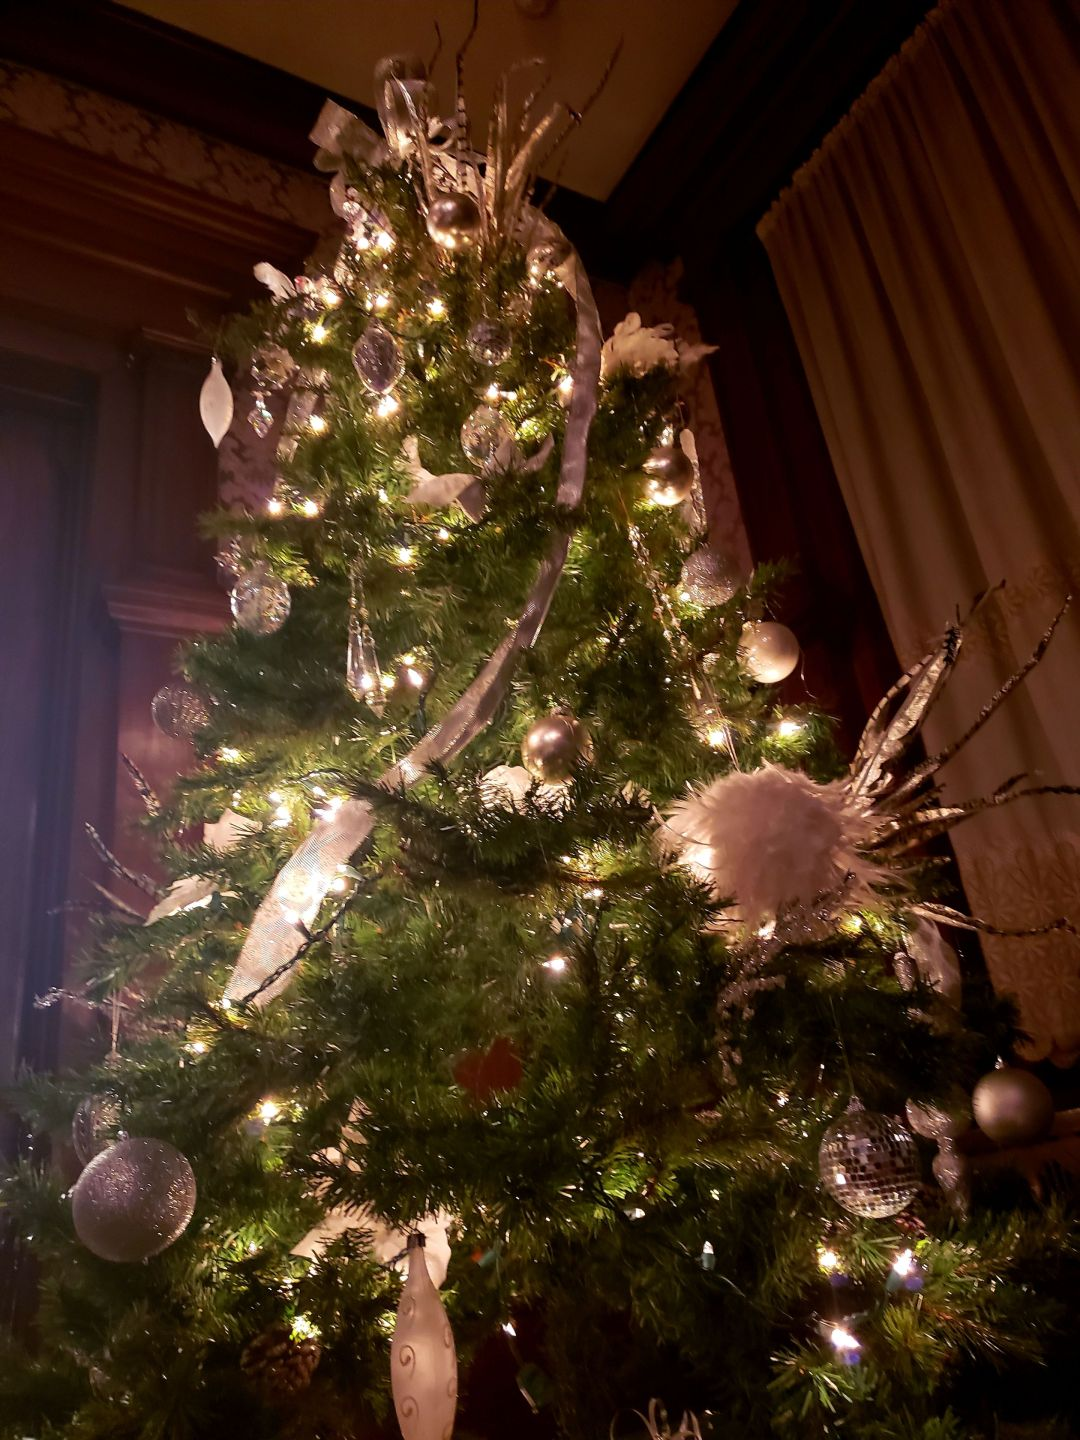 20181213_210852-1440x1920 African American Home Tour: Herndon Home During the Holidays